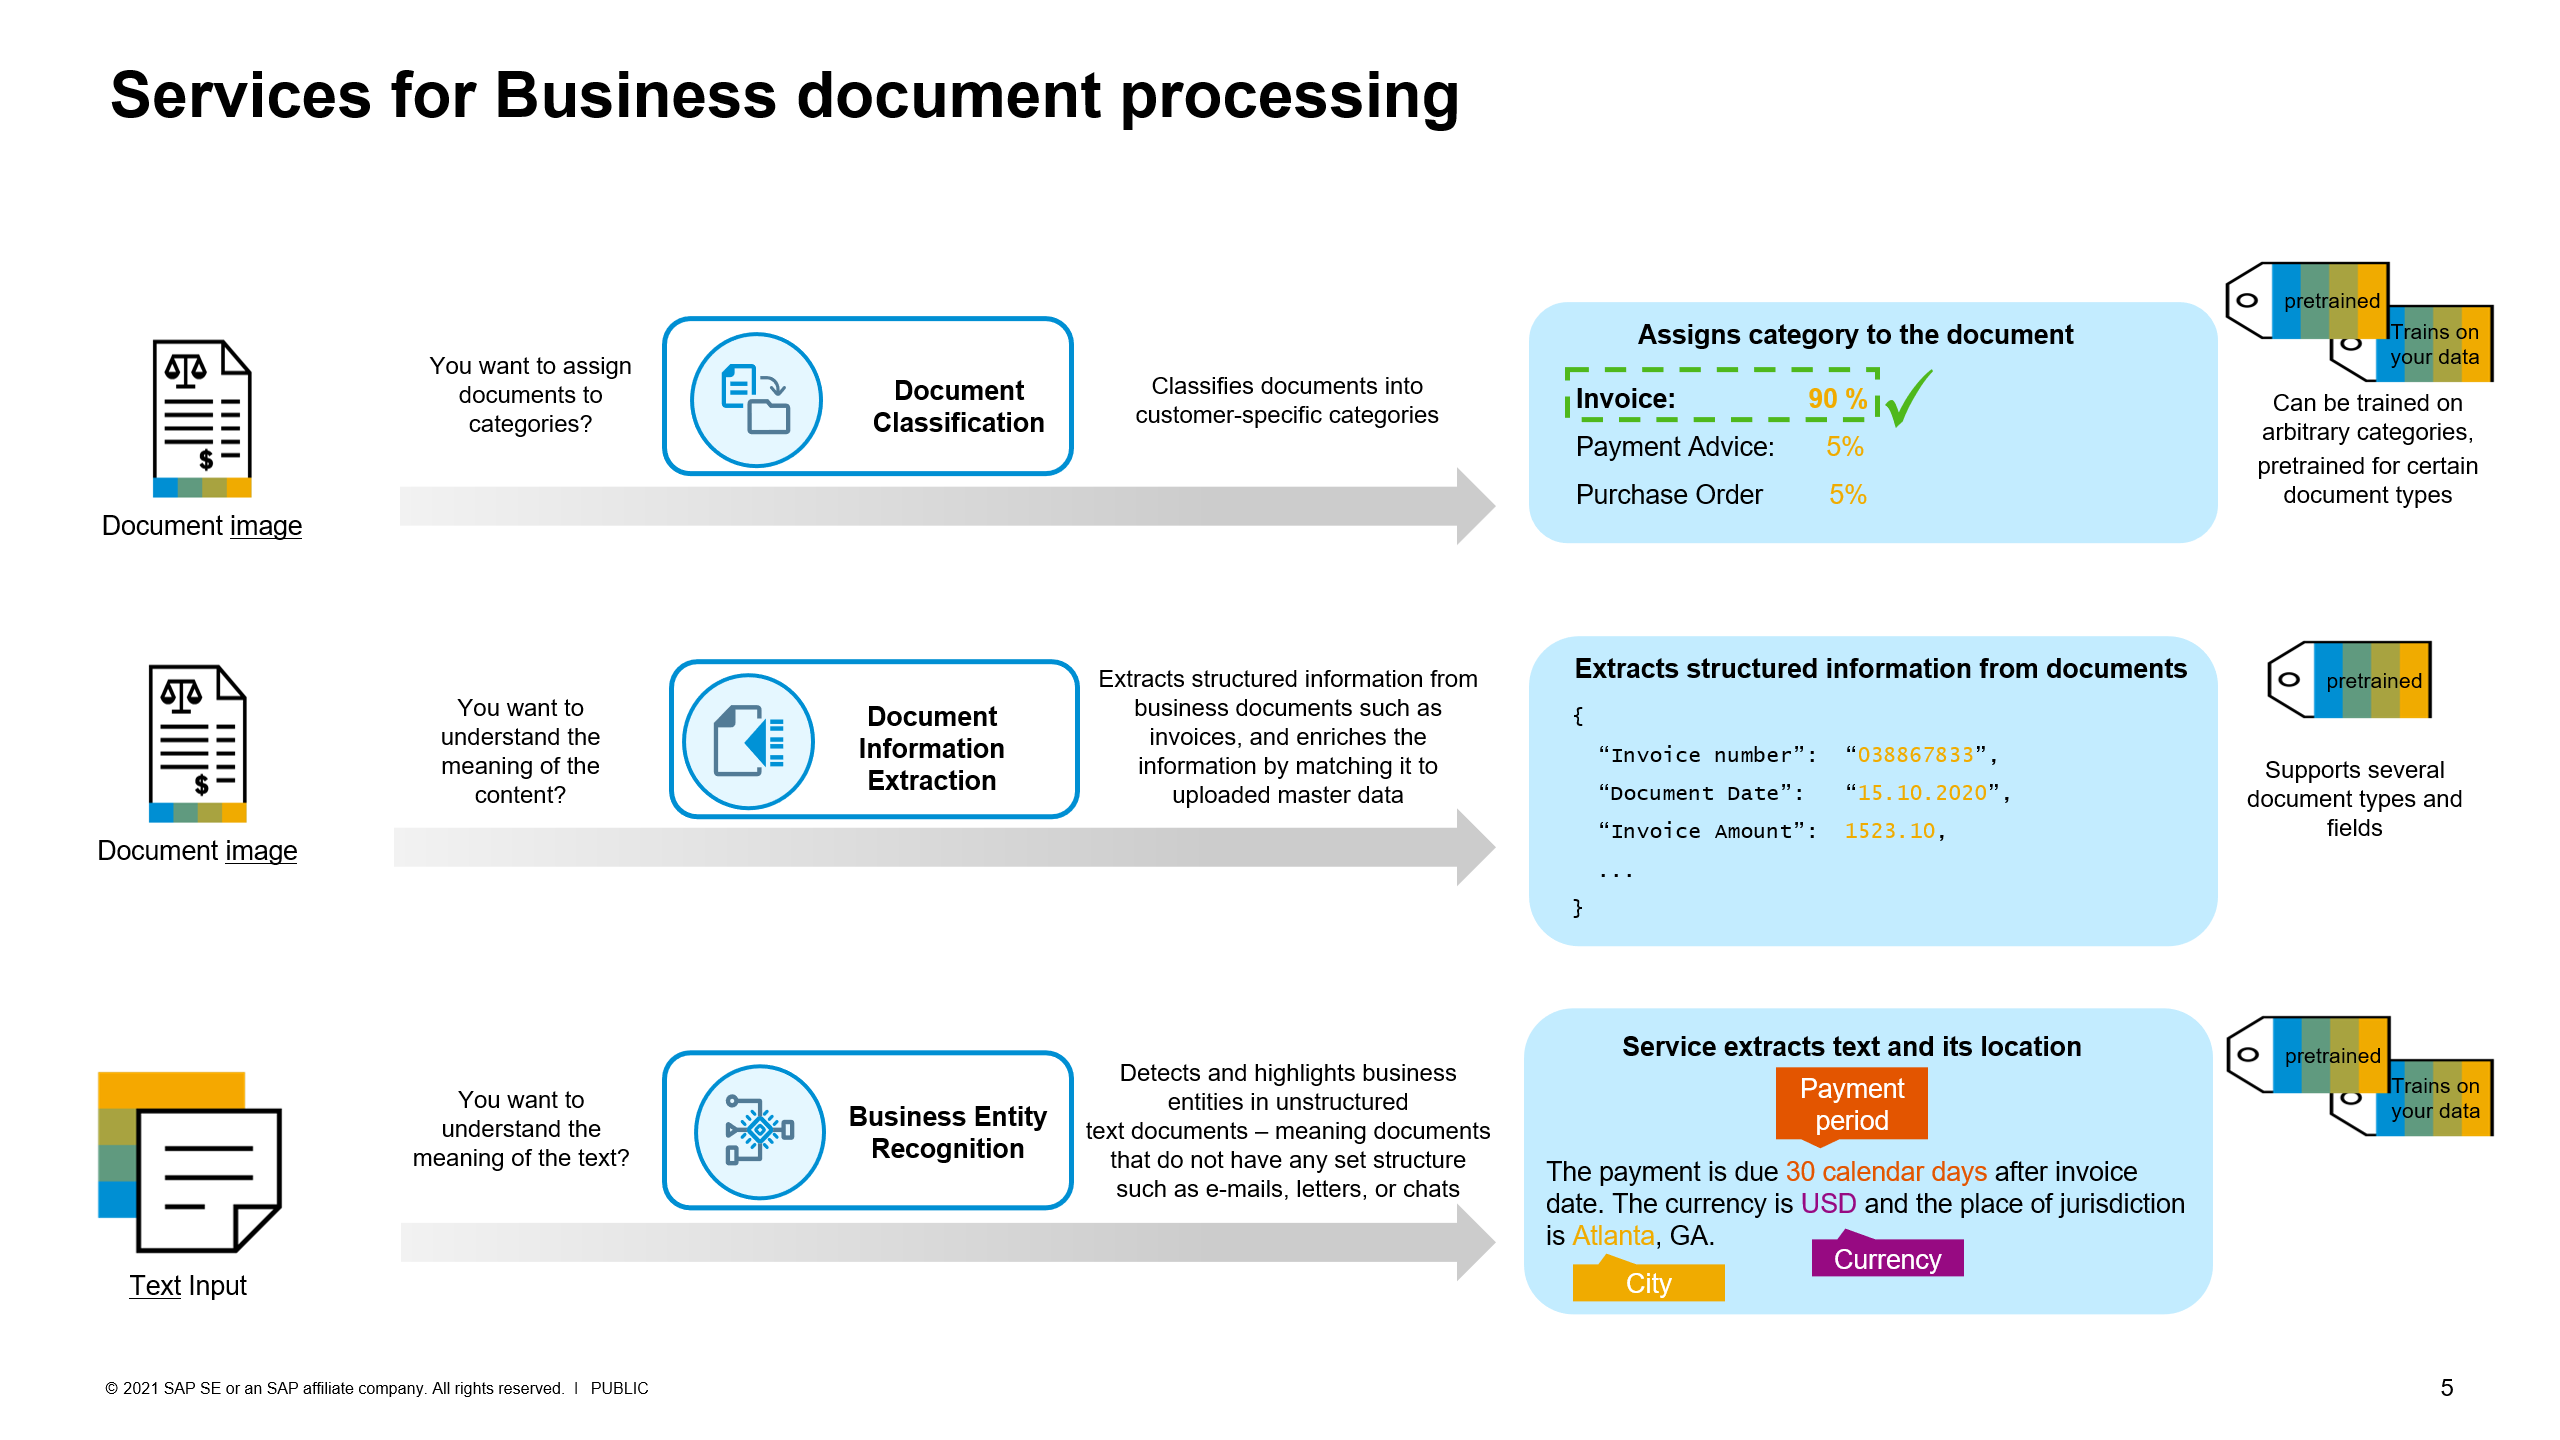 Services%20for%20Business%20document%20processing